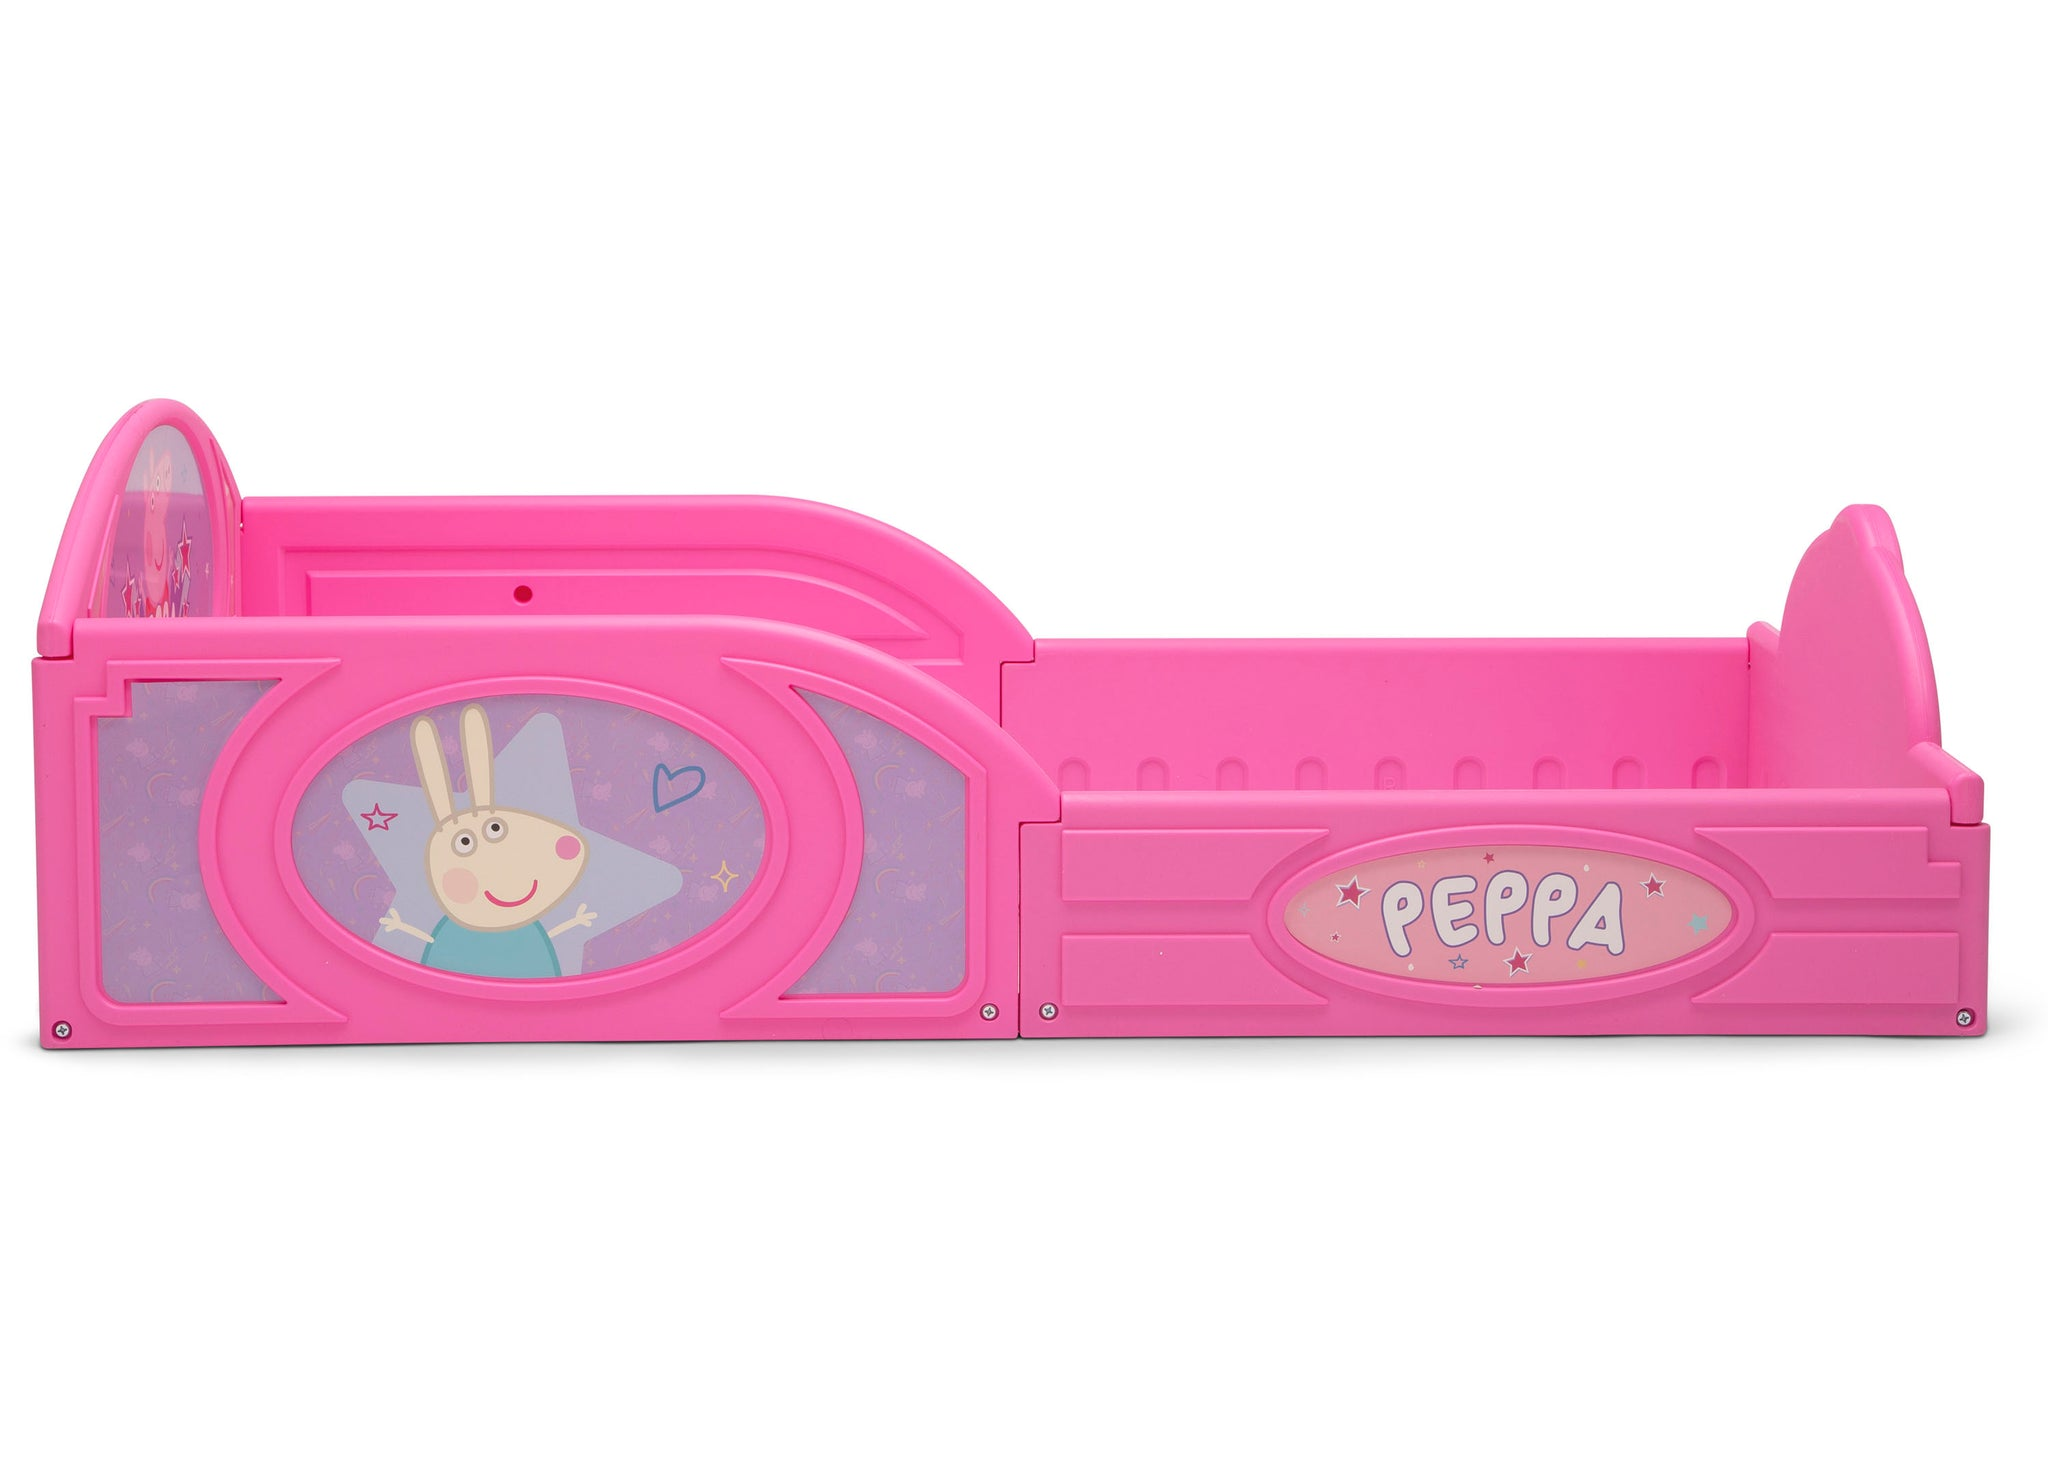 Delta Children Peppa Pig (1171) Plastic Sleep and Play Toddler Bed, Side Silo View